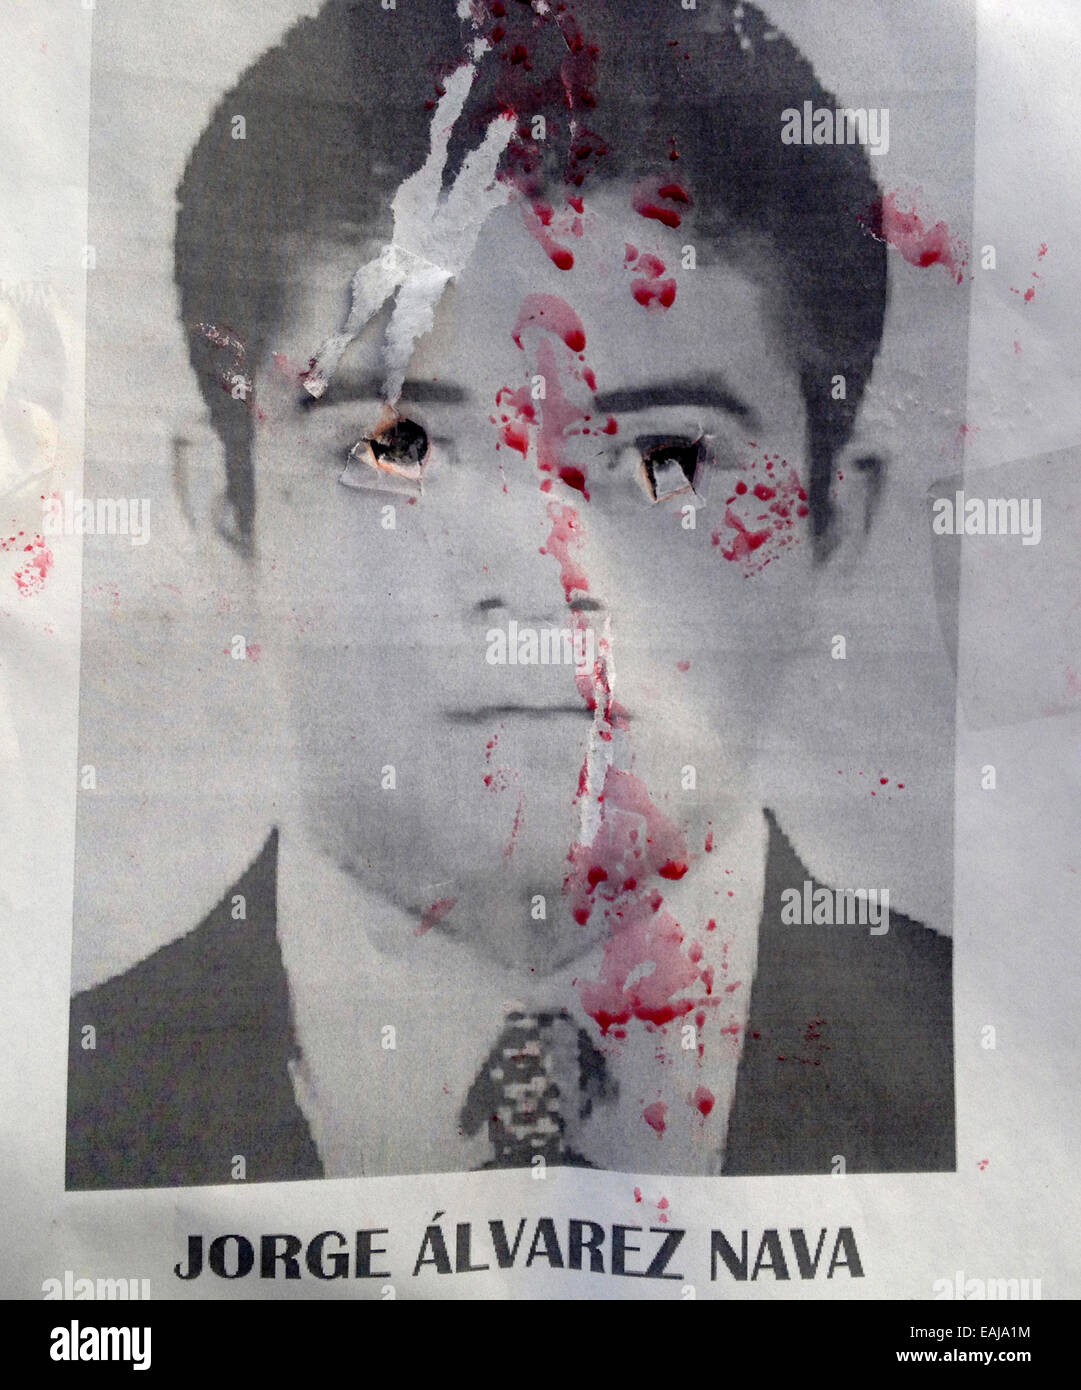 Guerrero State, Mexico. 15th Nov, 2014. A portrait of missing student Jorge Alvarez Nava painted with red paint - Stock Image